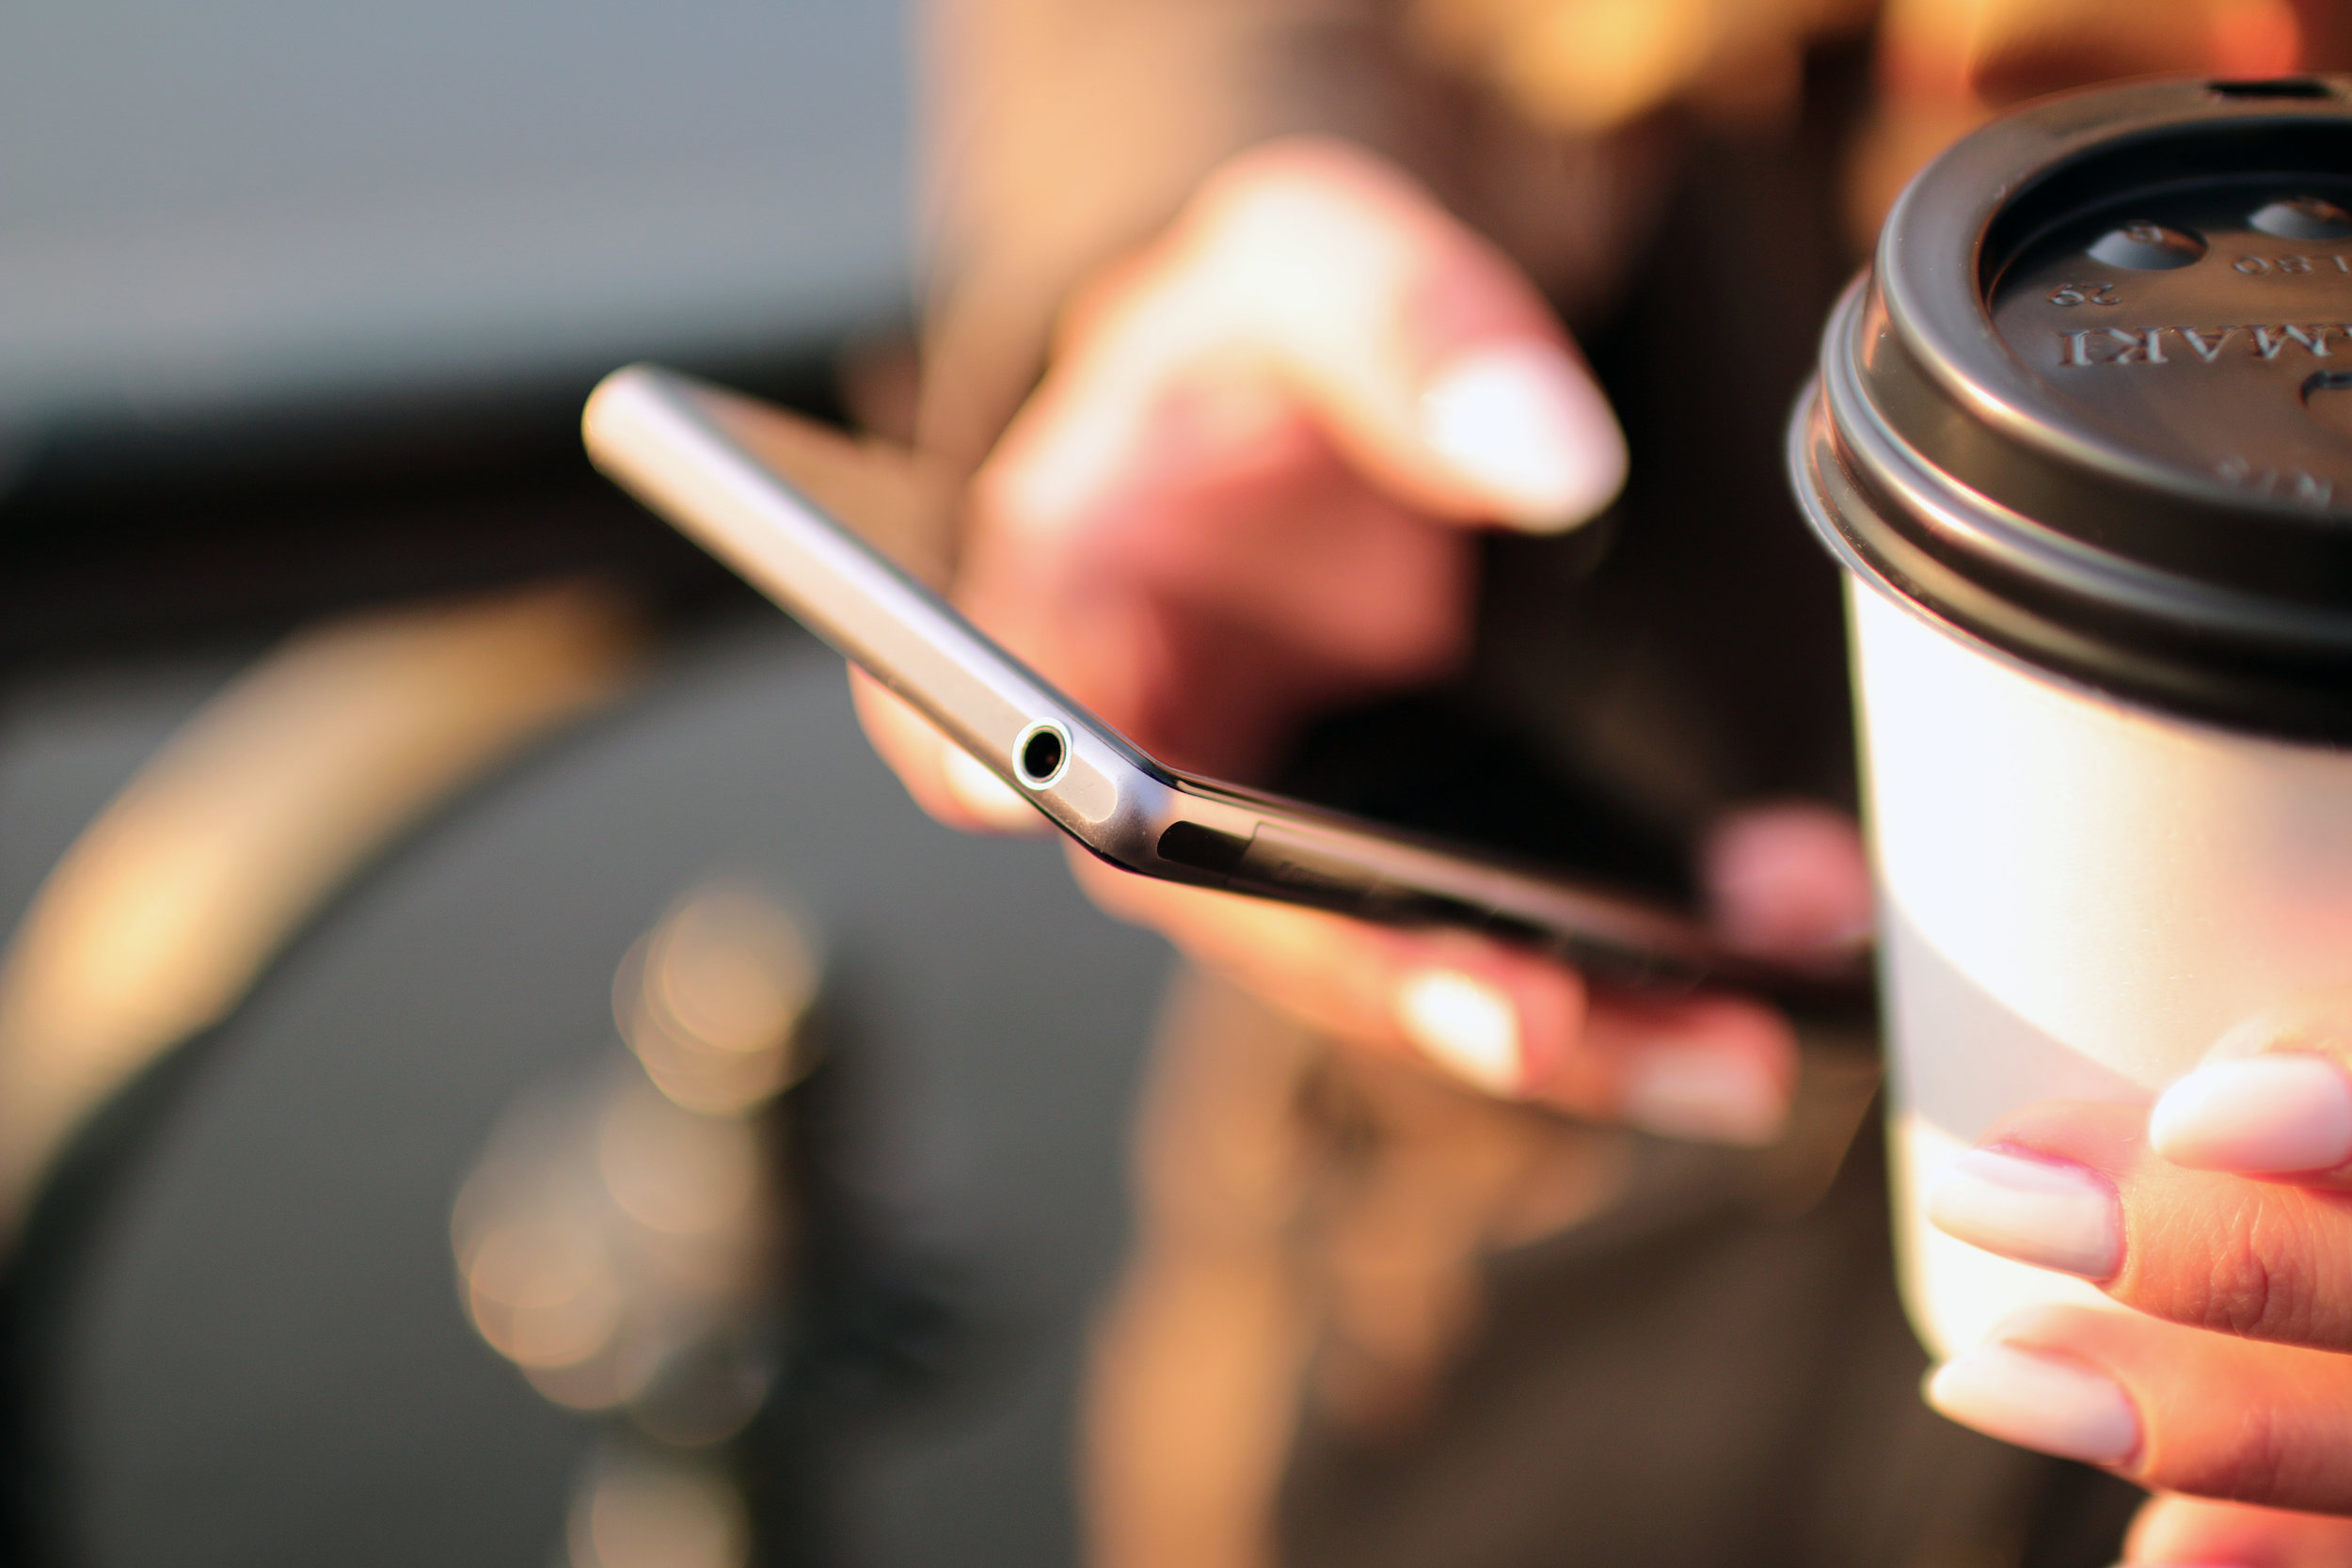 www.mgmstraining.ie/hands-coffee-smartphone-technology